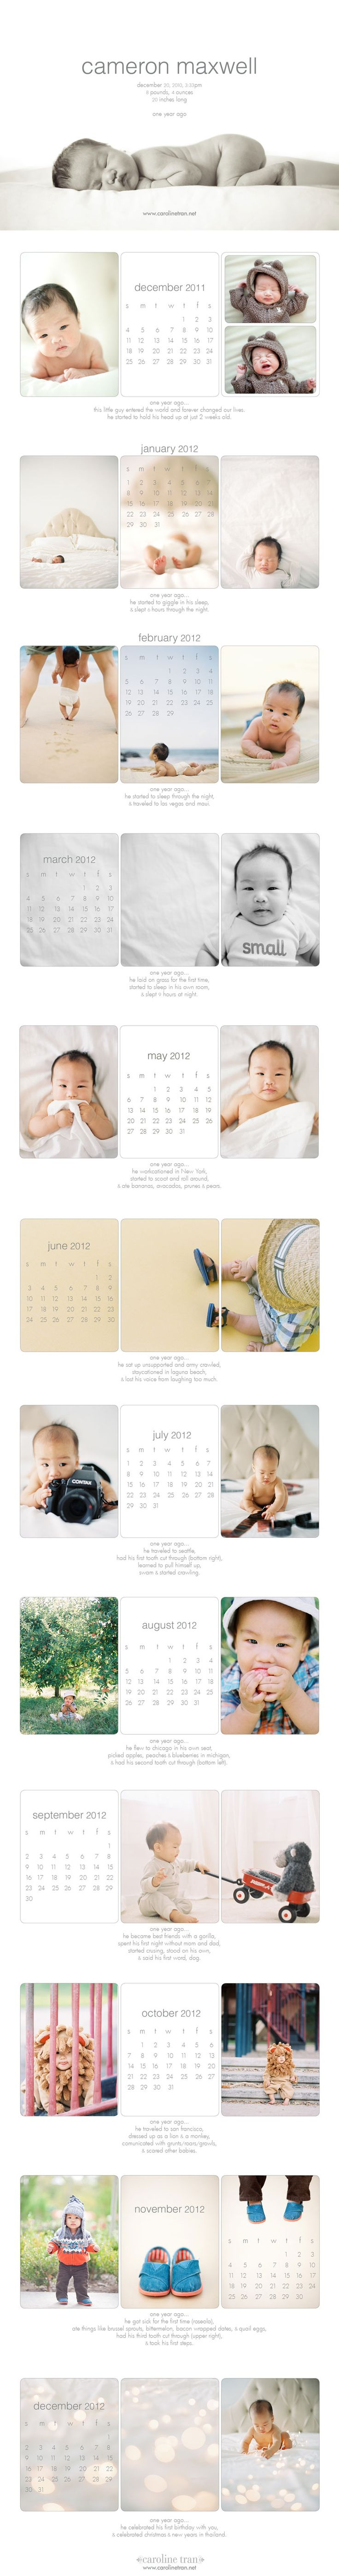 """""""One Year Ago"""" calenders chronicling his first year. These were printed as individual months and packaged in a clear case as favors from his first birthday party."""